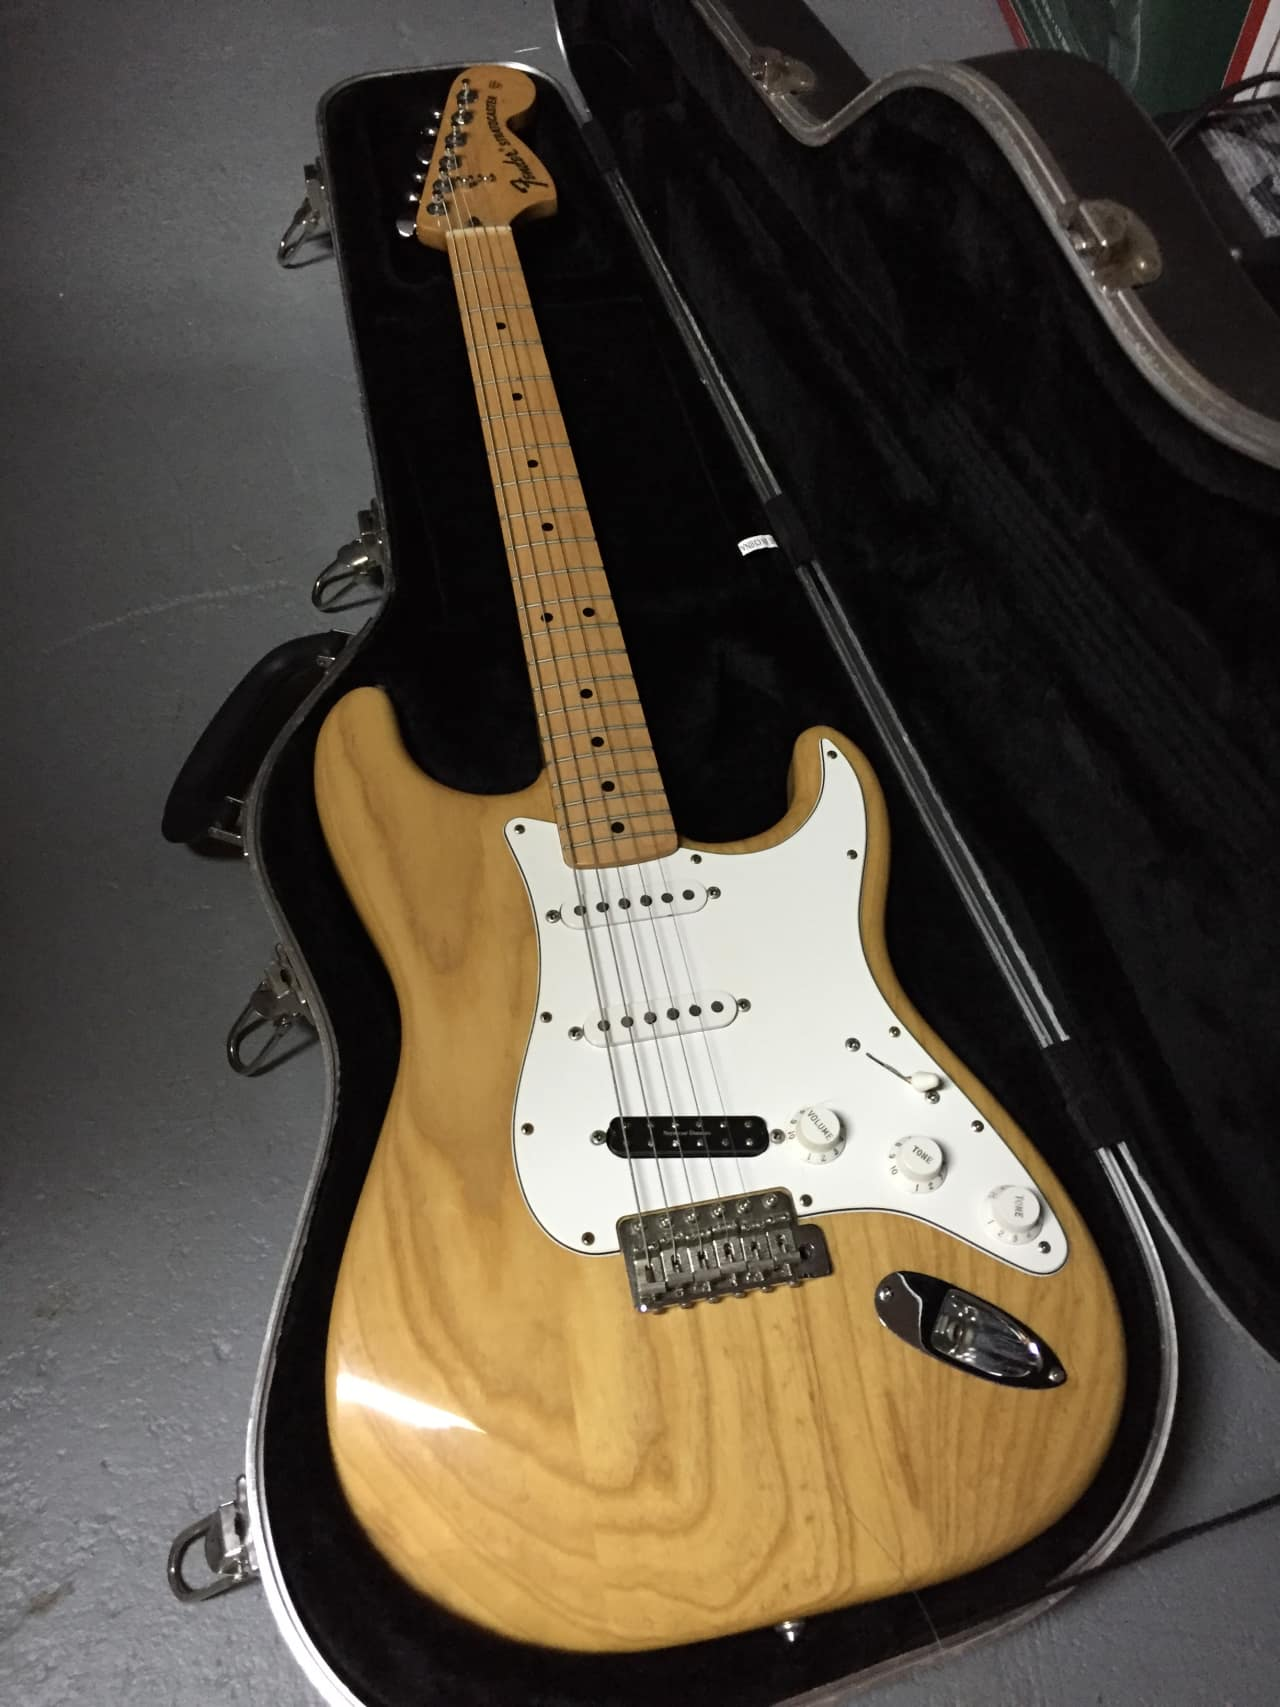 Unfortunately! You Vintage 70s strat obvious